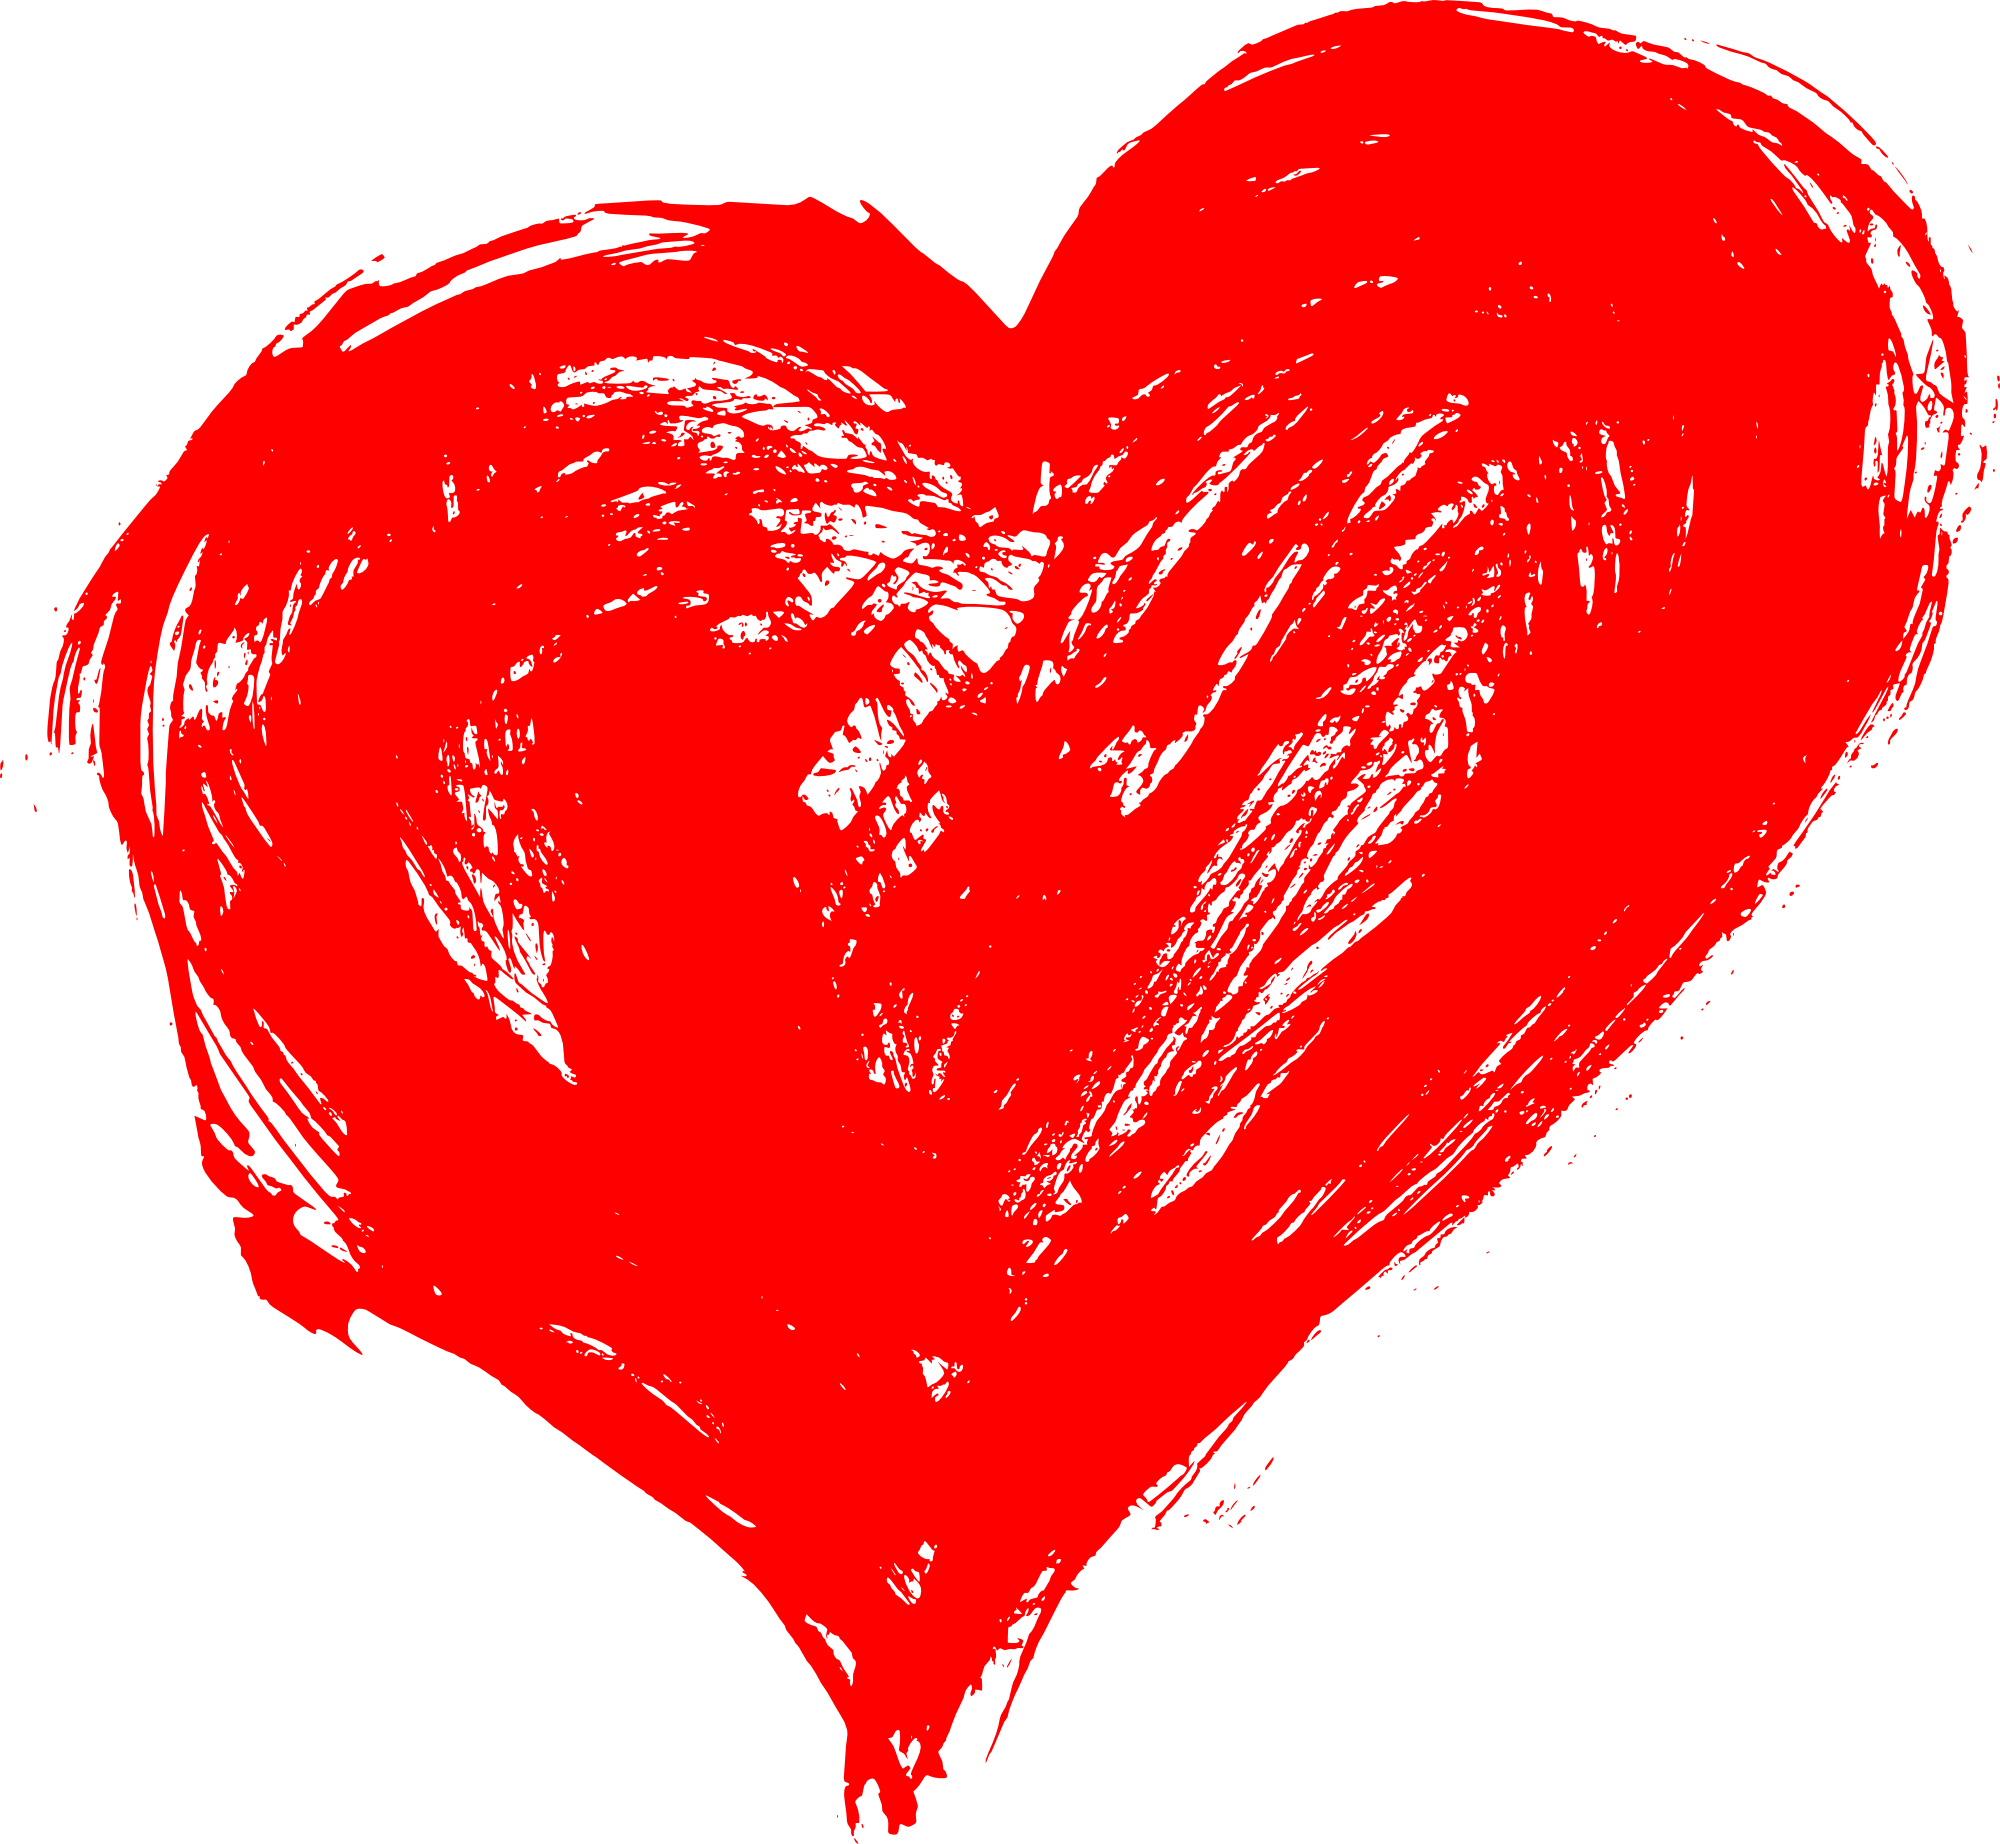 Heart clipart hand drawn. Png transparent onlygfx com